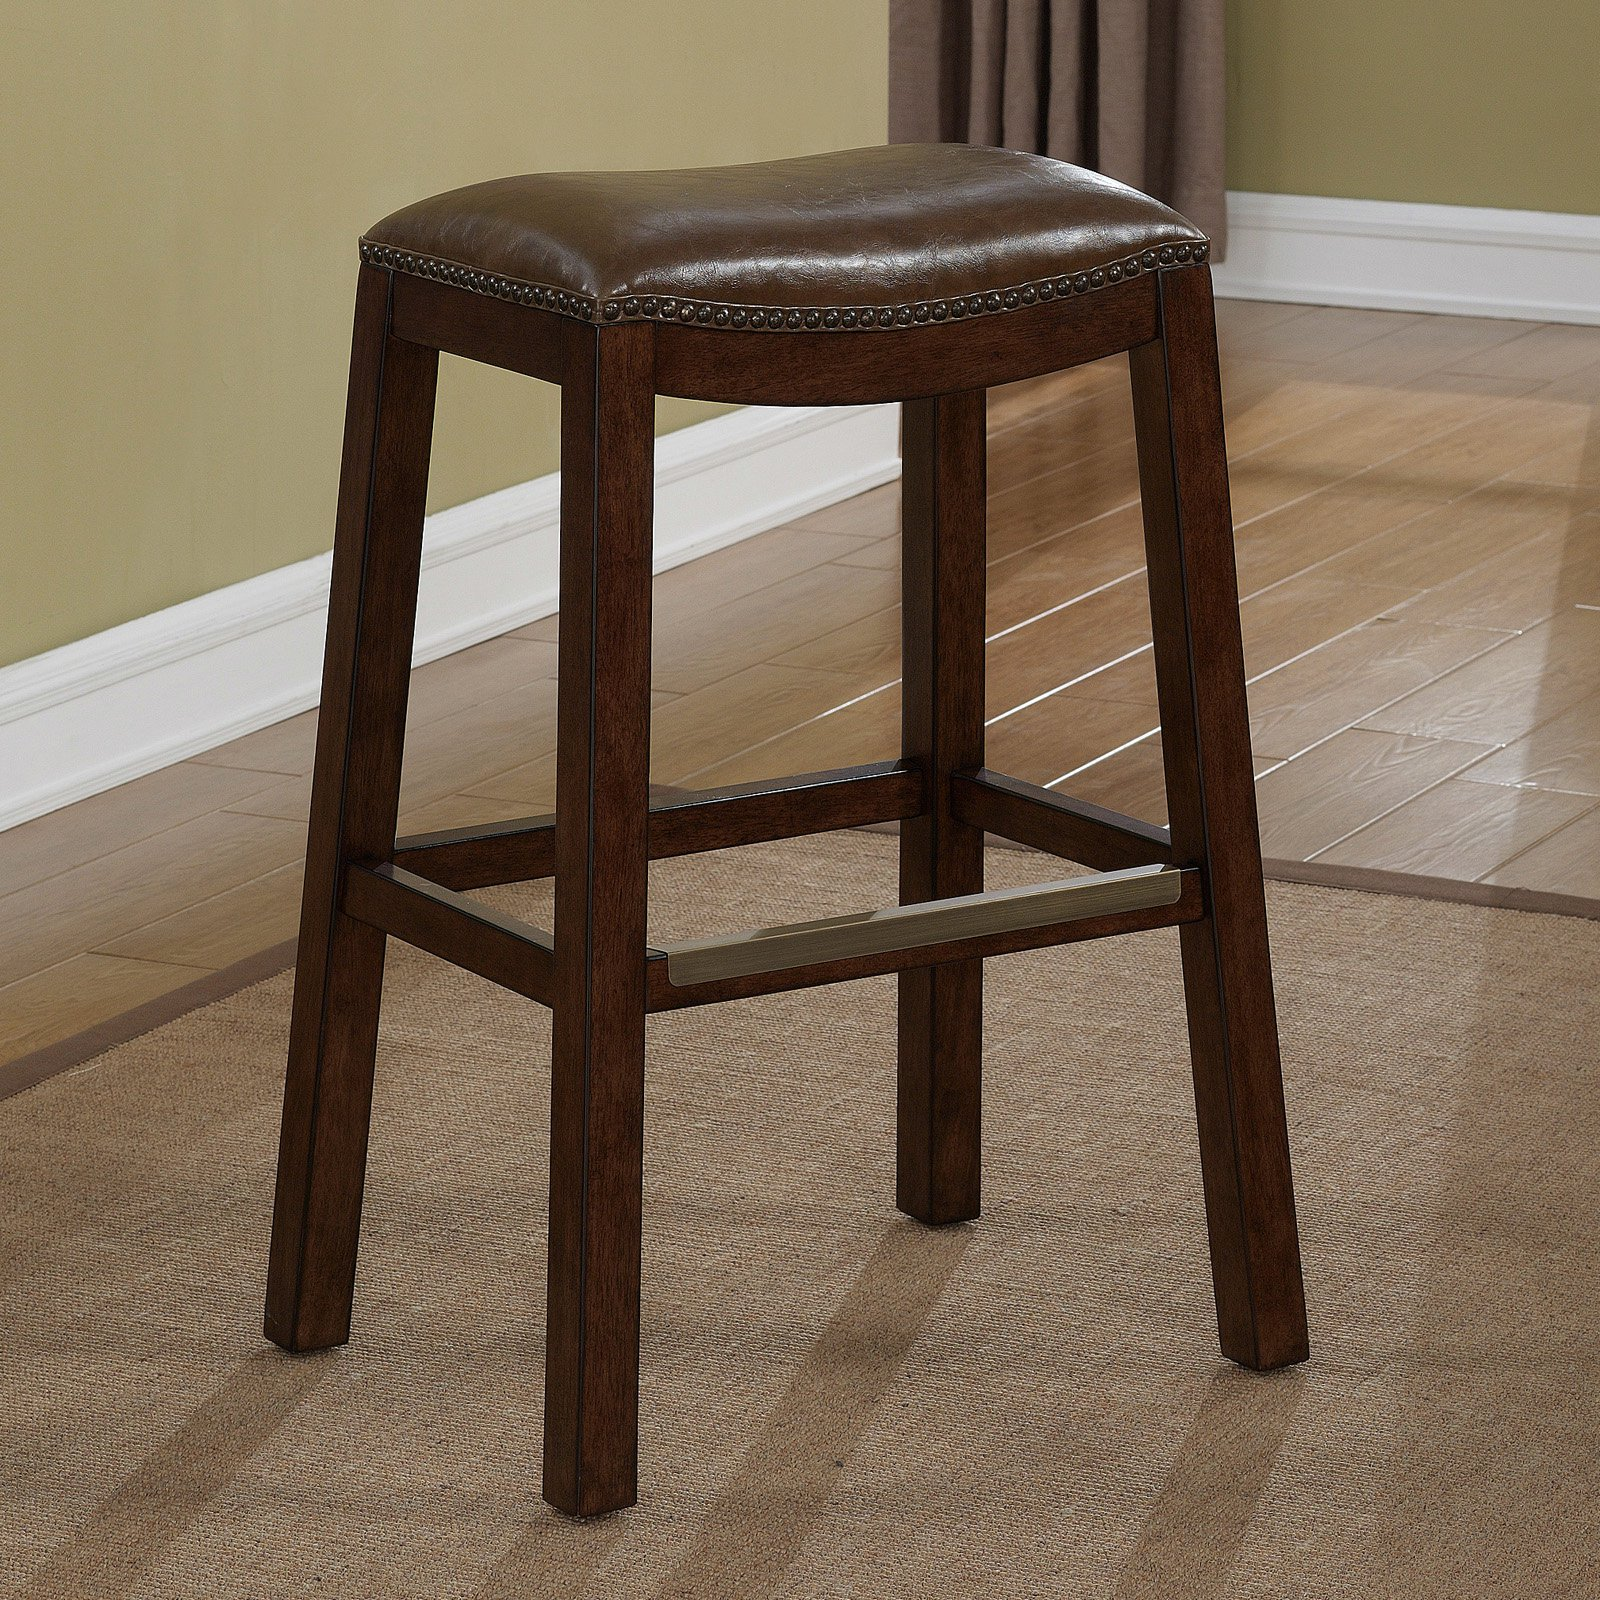 American Heritage Austin Counter Height Stool by American Heritage Billiards